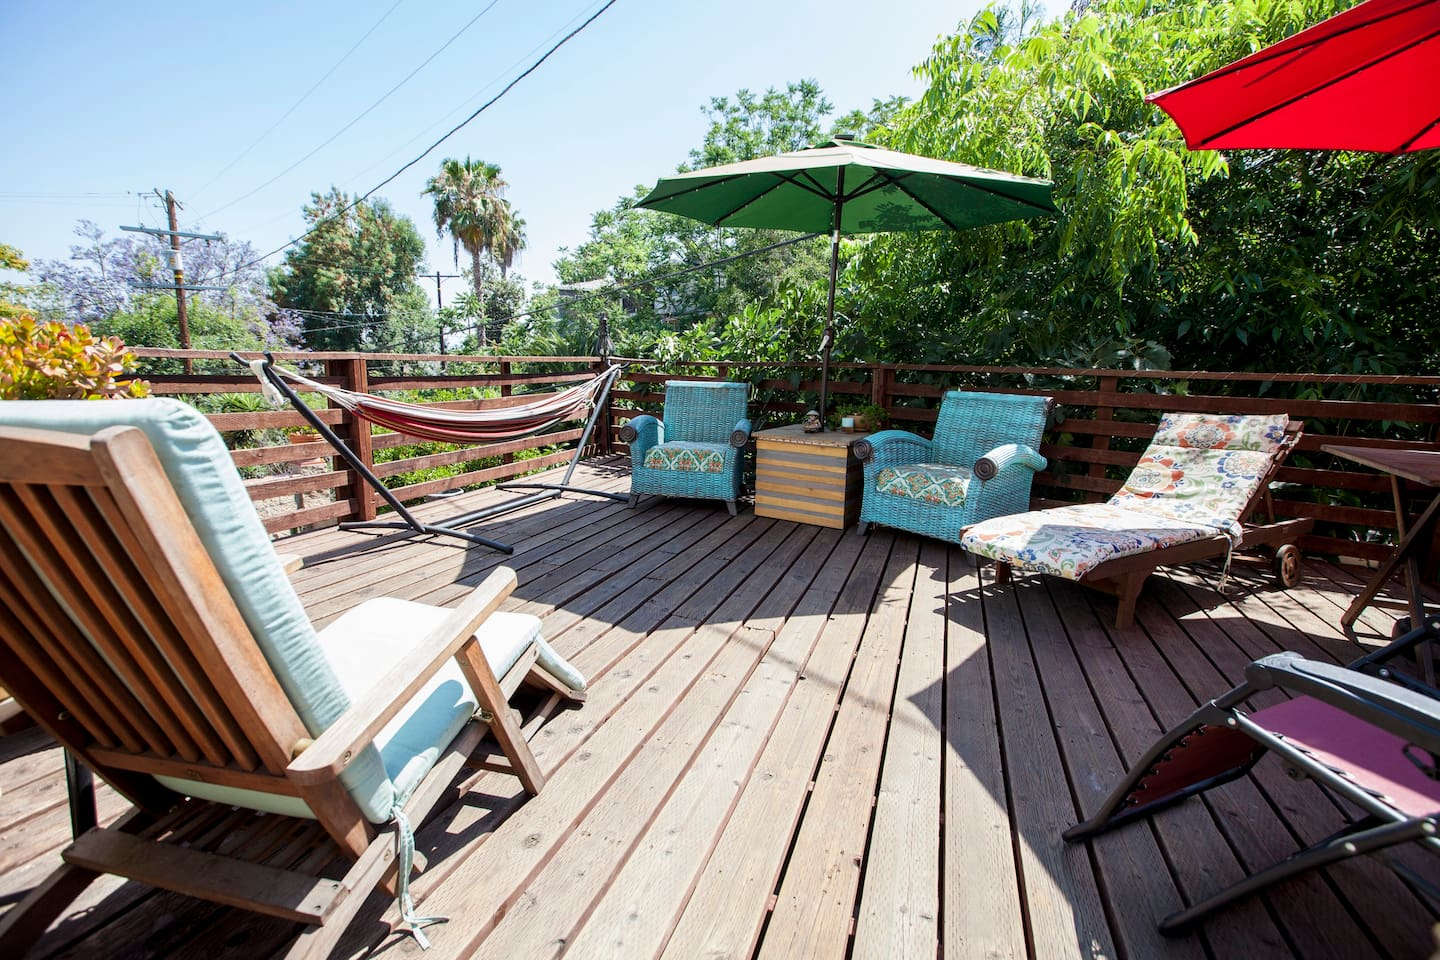 Plenty of areas to lounge around on the back deck